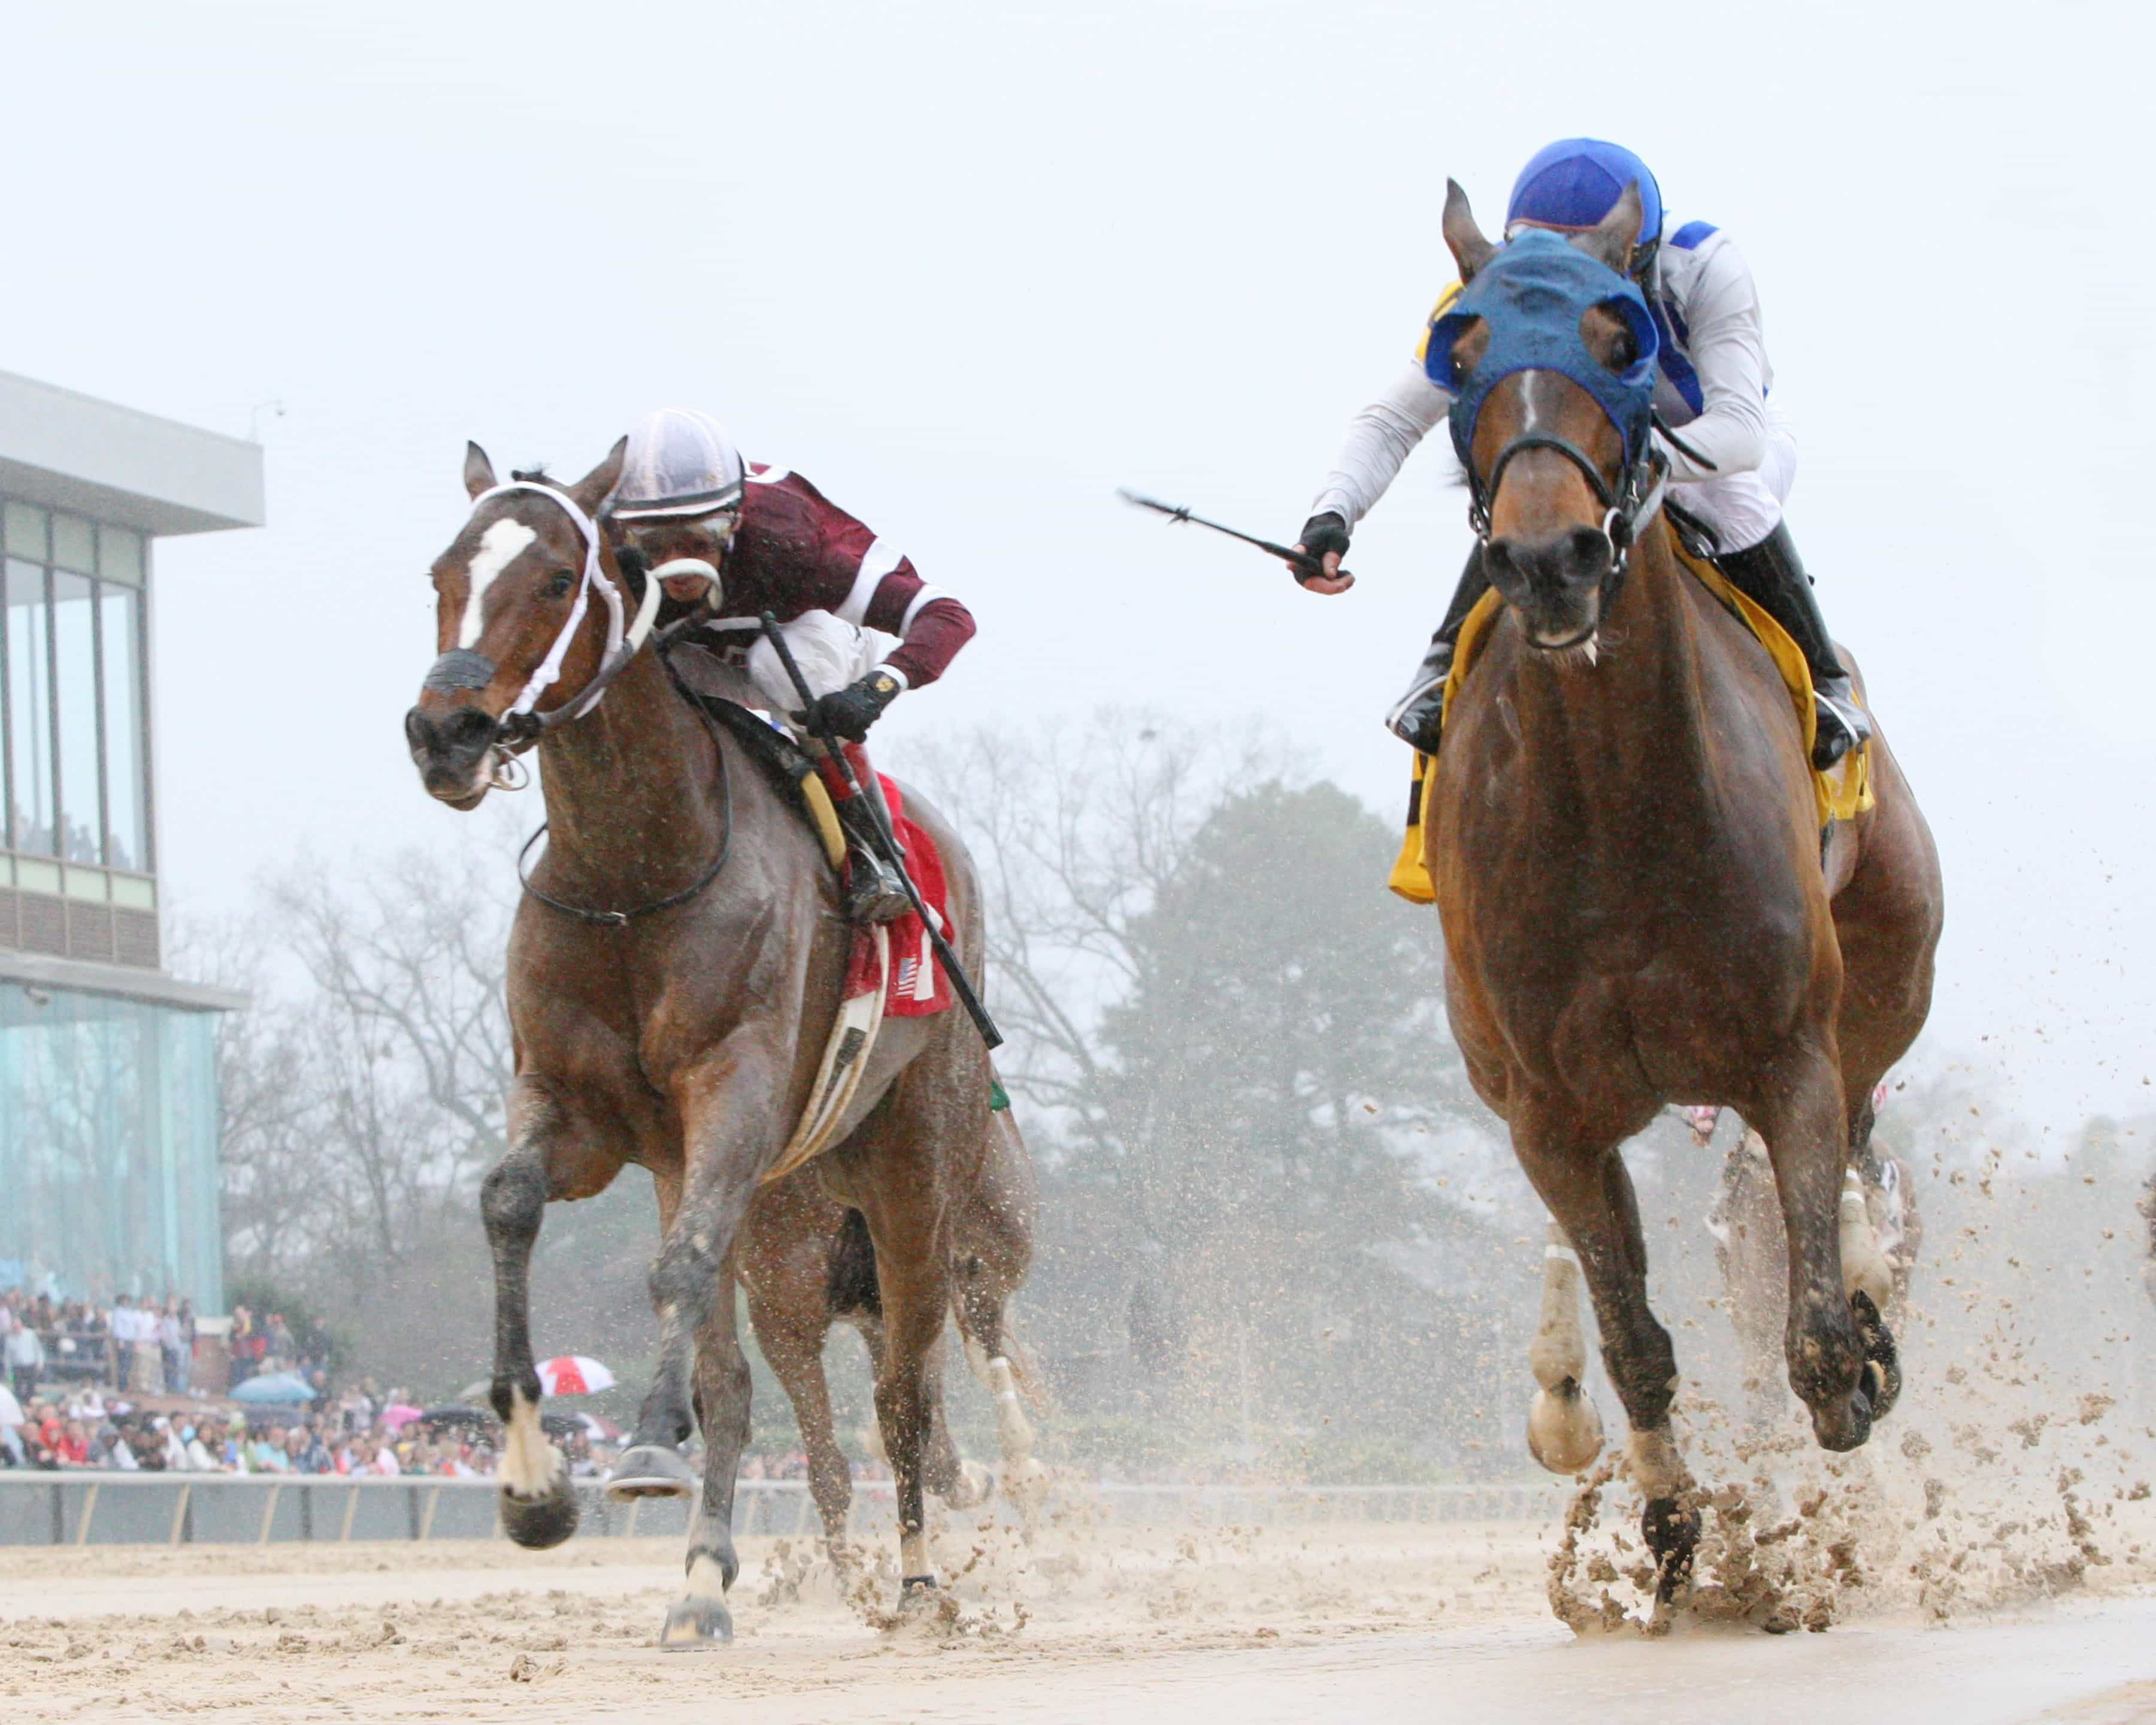 Gold Medal Dancer - The Azeri - Gr II - The 29th Running - 03-14-15 - R07 - OP - Under Rail - Photo credit: Oaklawn/Coady Photography